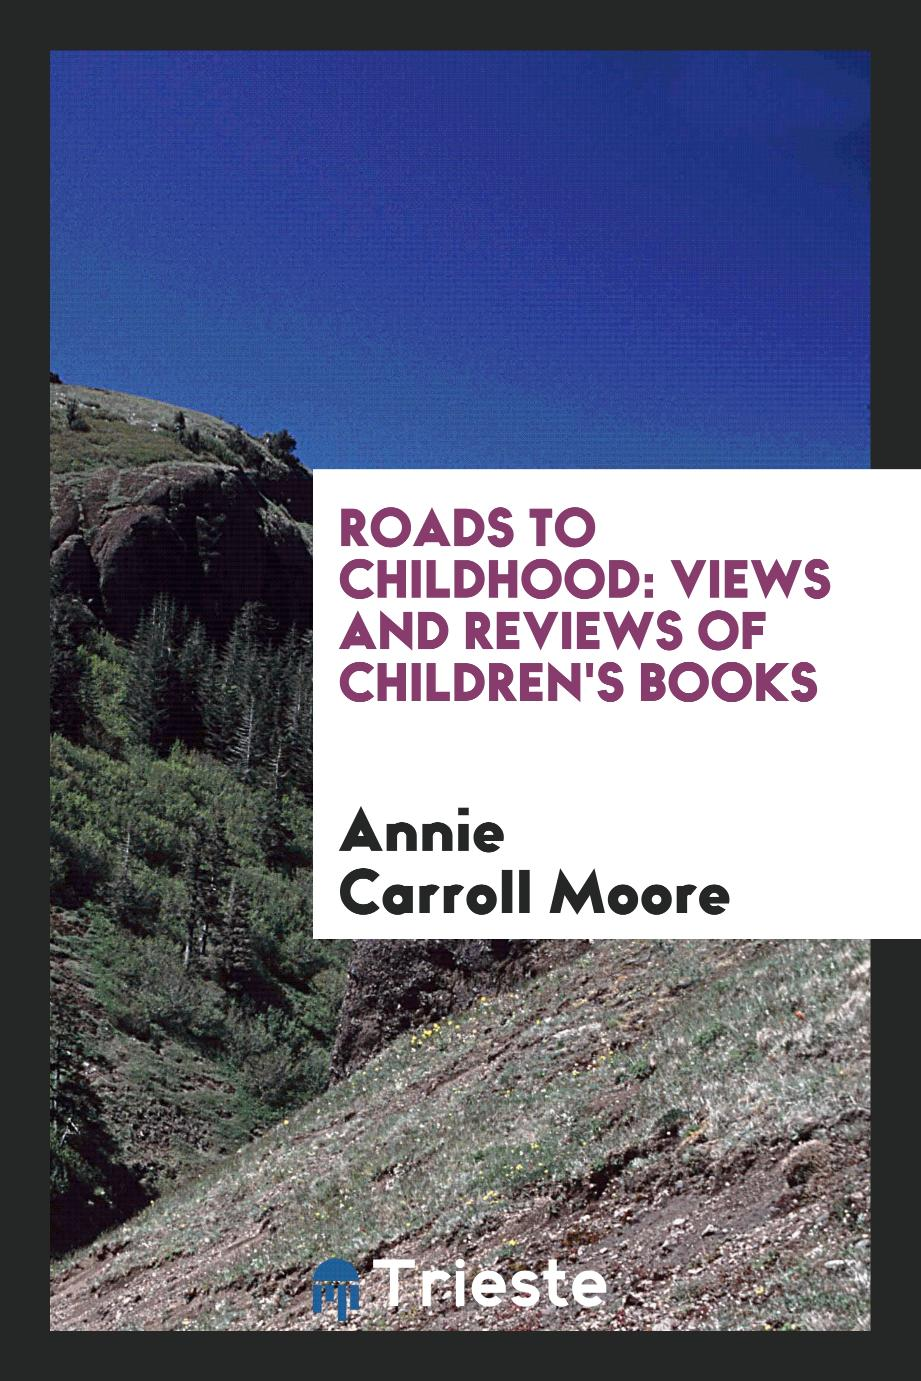 Roads to childhood: views and reviews of children's books